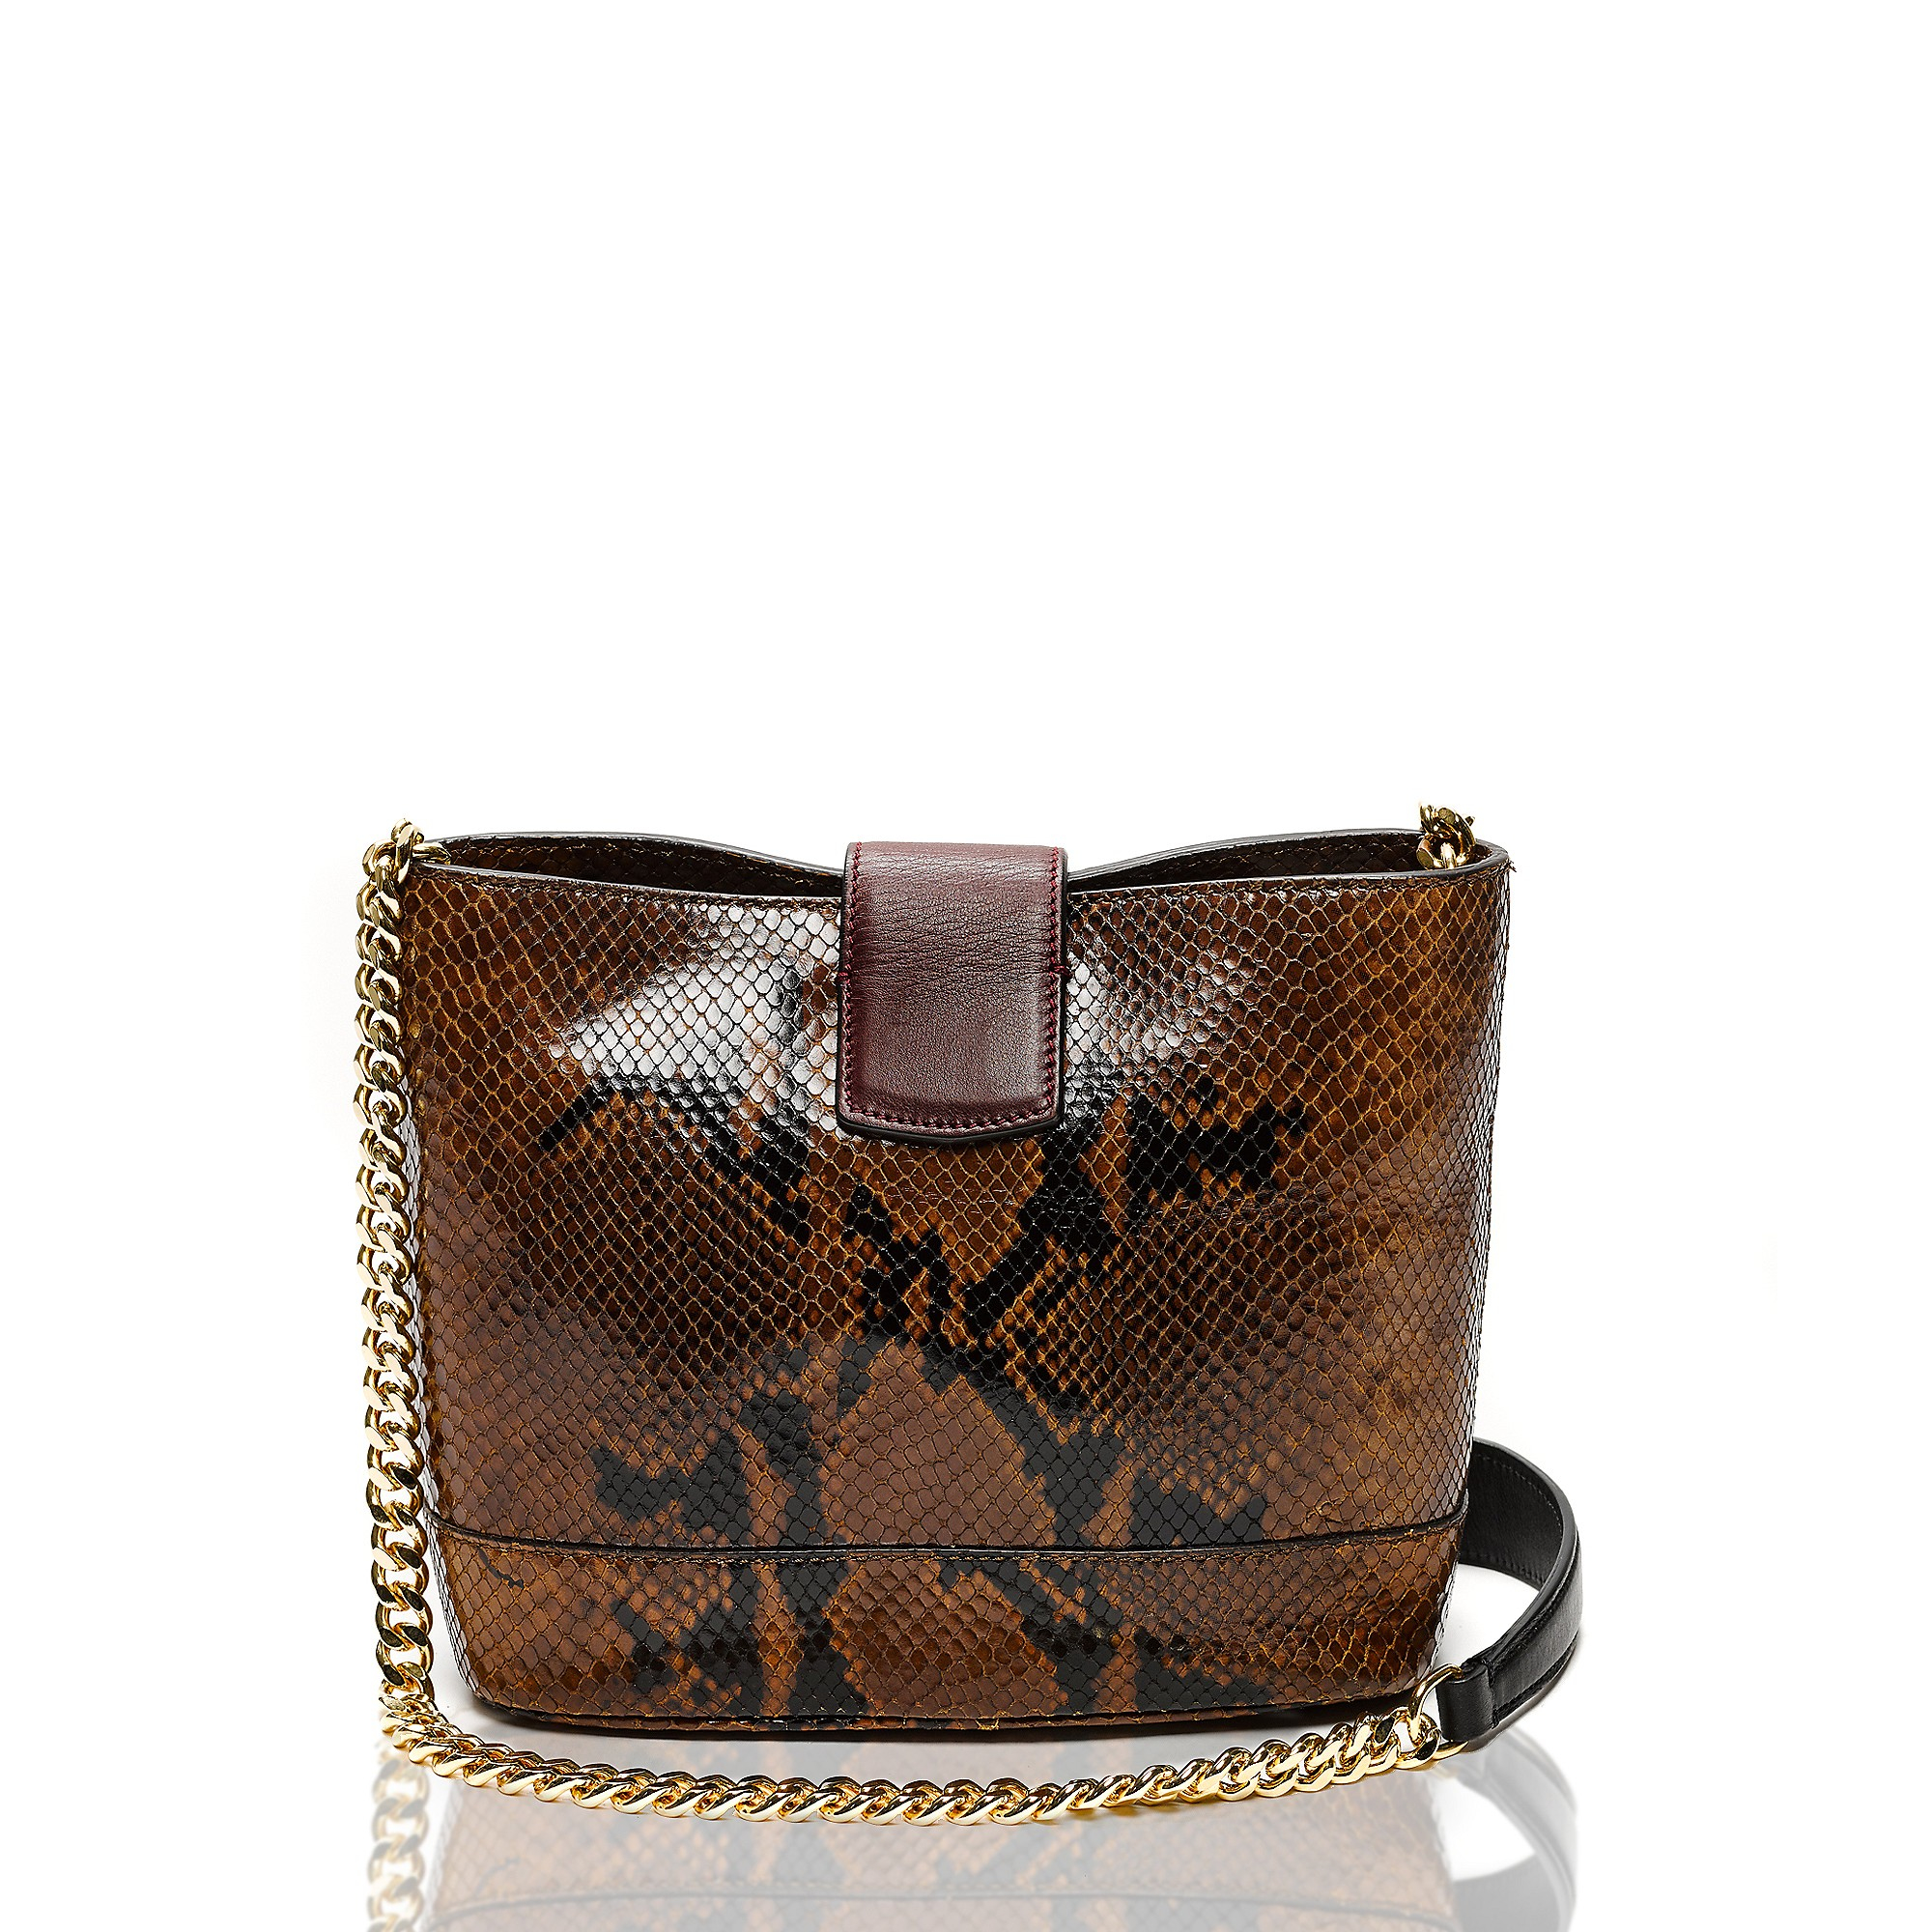 prada mens handbag - prada python crossbody bag